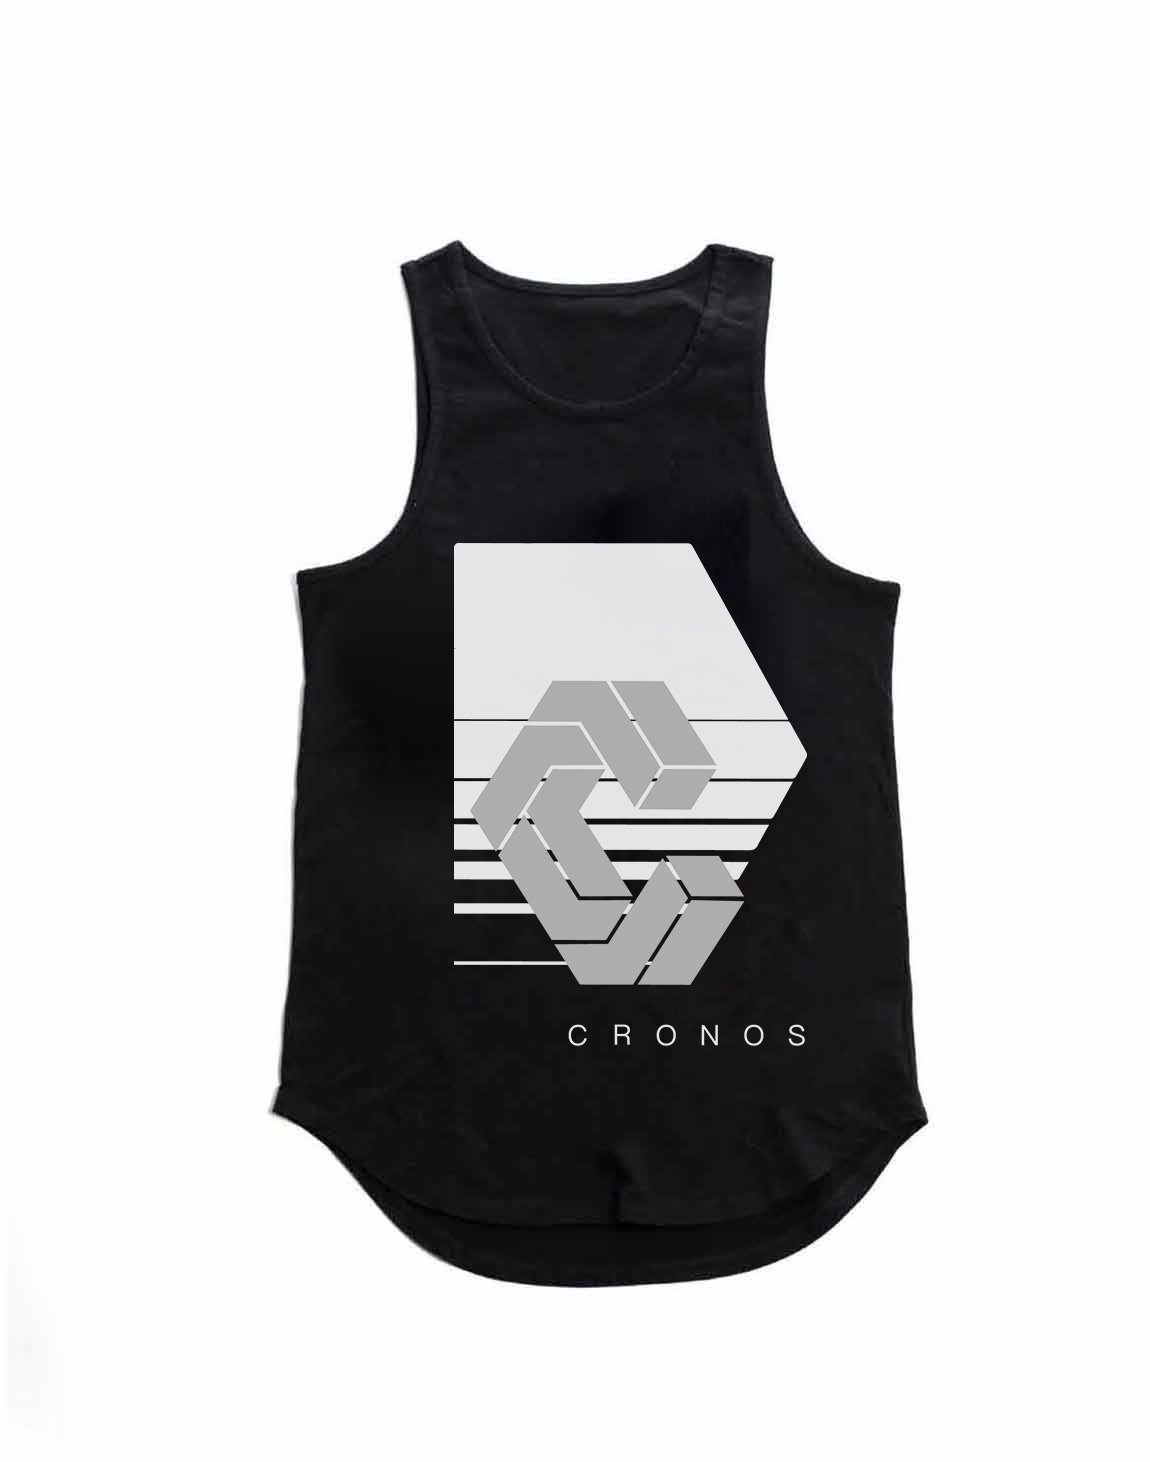 <img class='new_mark_img1' src='https://img.shop-pro.jp/img/new/icons1.gif' style='border:none;display:inline;margin:0px;padding:0px;width:auto;' />CRONOS REFLECTION LOGO TANK TOP【BLACK】